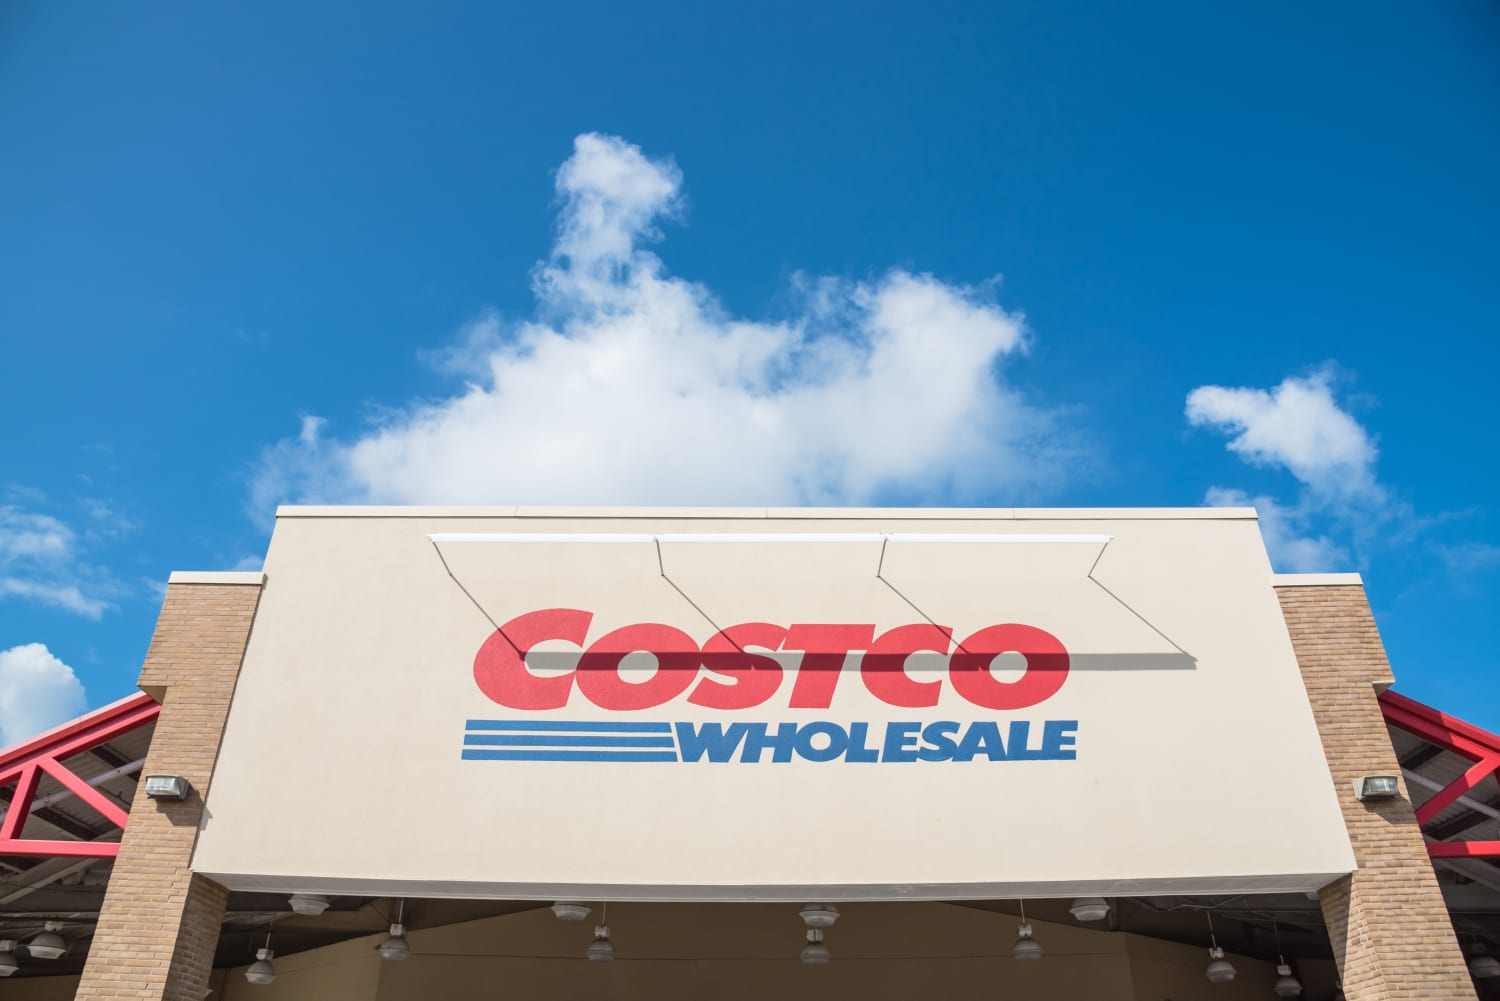 Costco Will Turn Your Phone Pics Into Expensive-Looking Art—for Pretty Cheap!